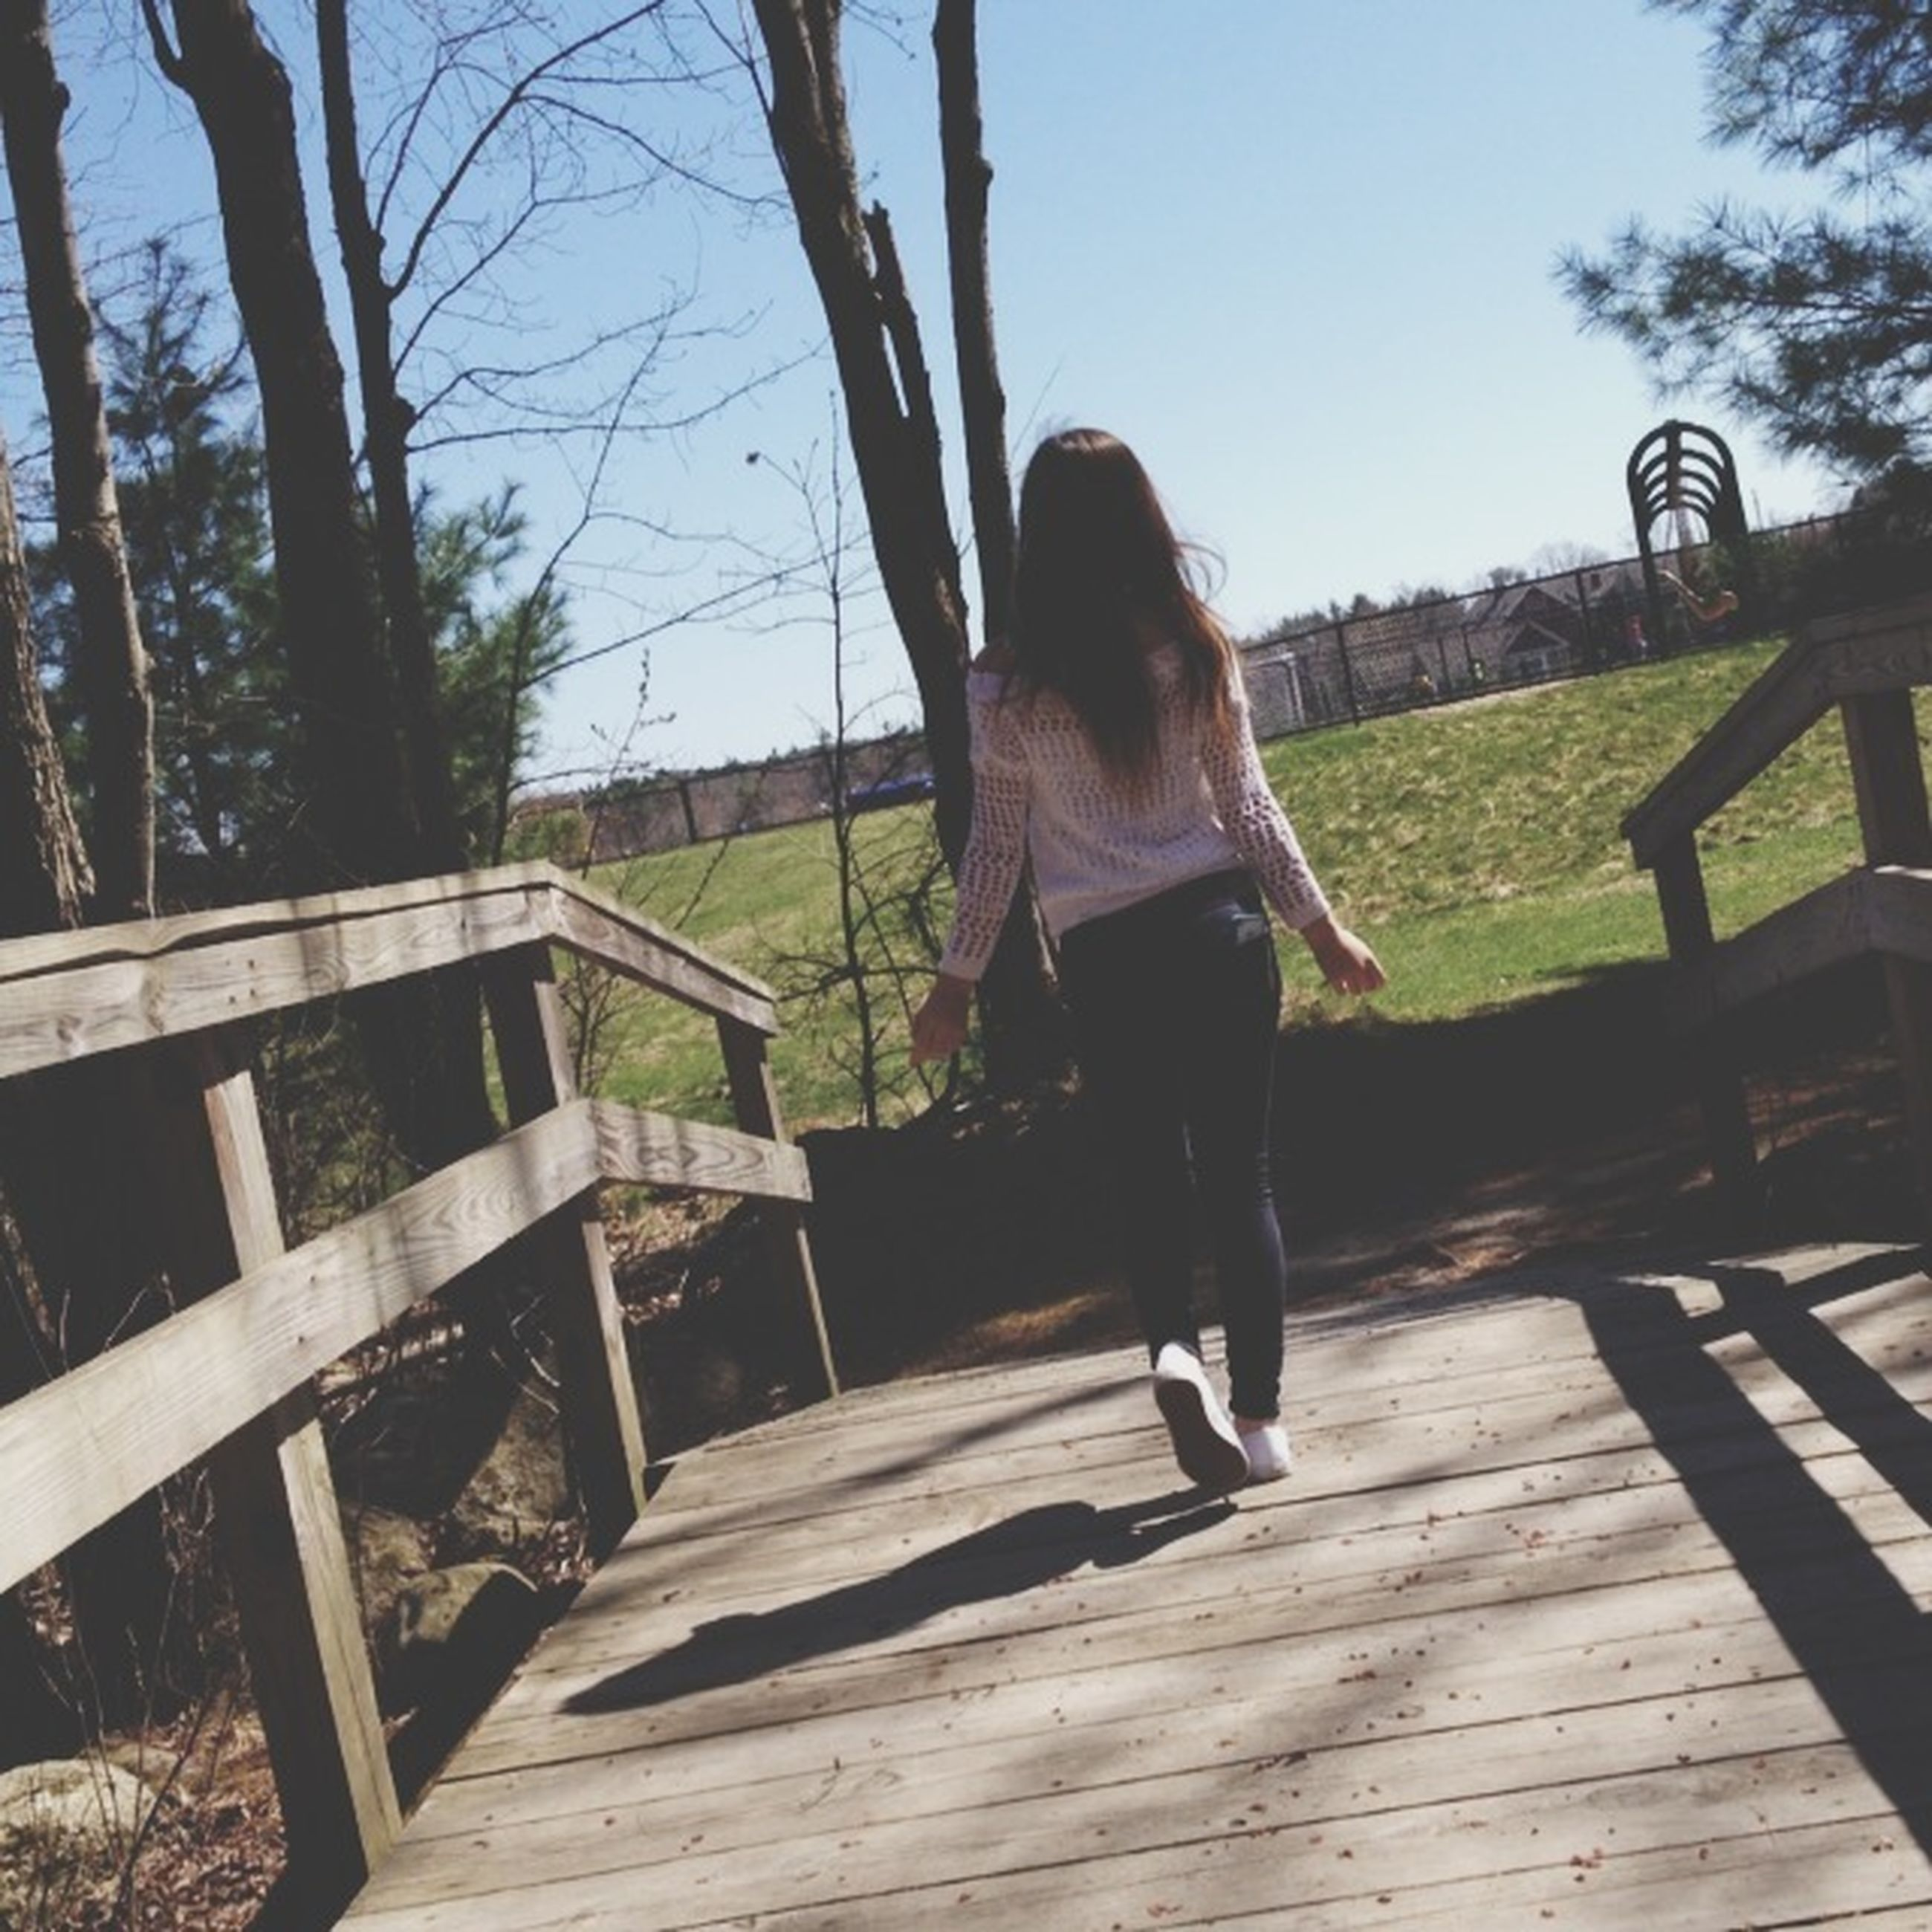 full length, lifestyles, tree, leisure activity, casual clothing, rear view, person, young adult, grass, standing, young women, long hair, wood - material, railing, childhood, sunlight, sky, park - man made space